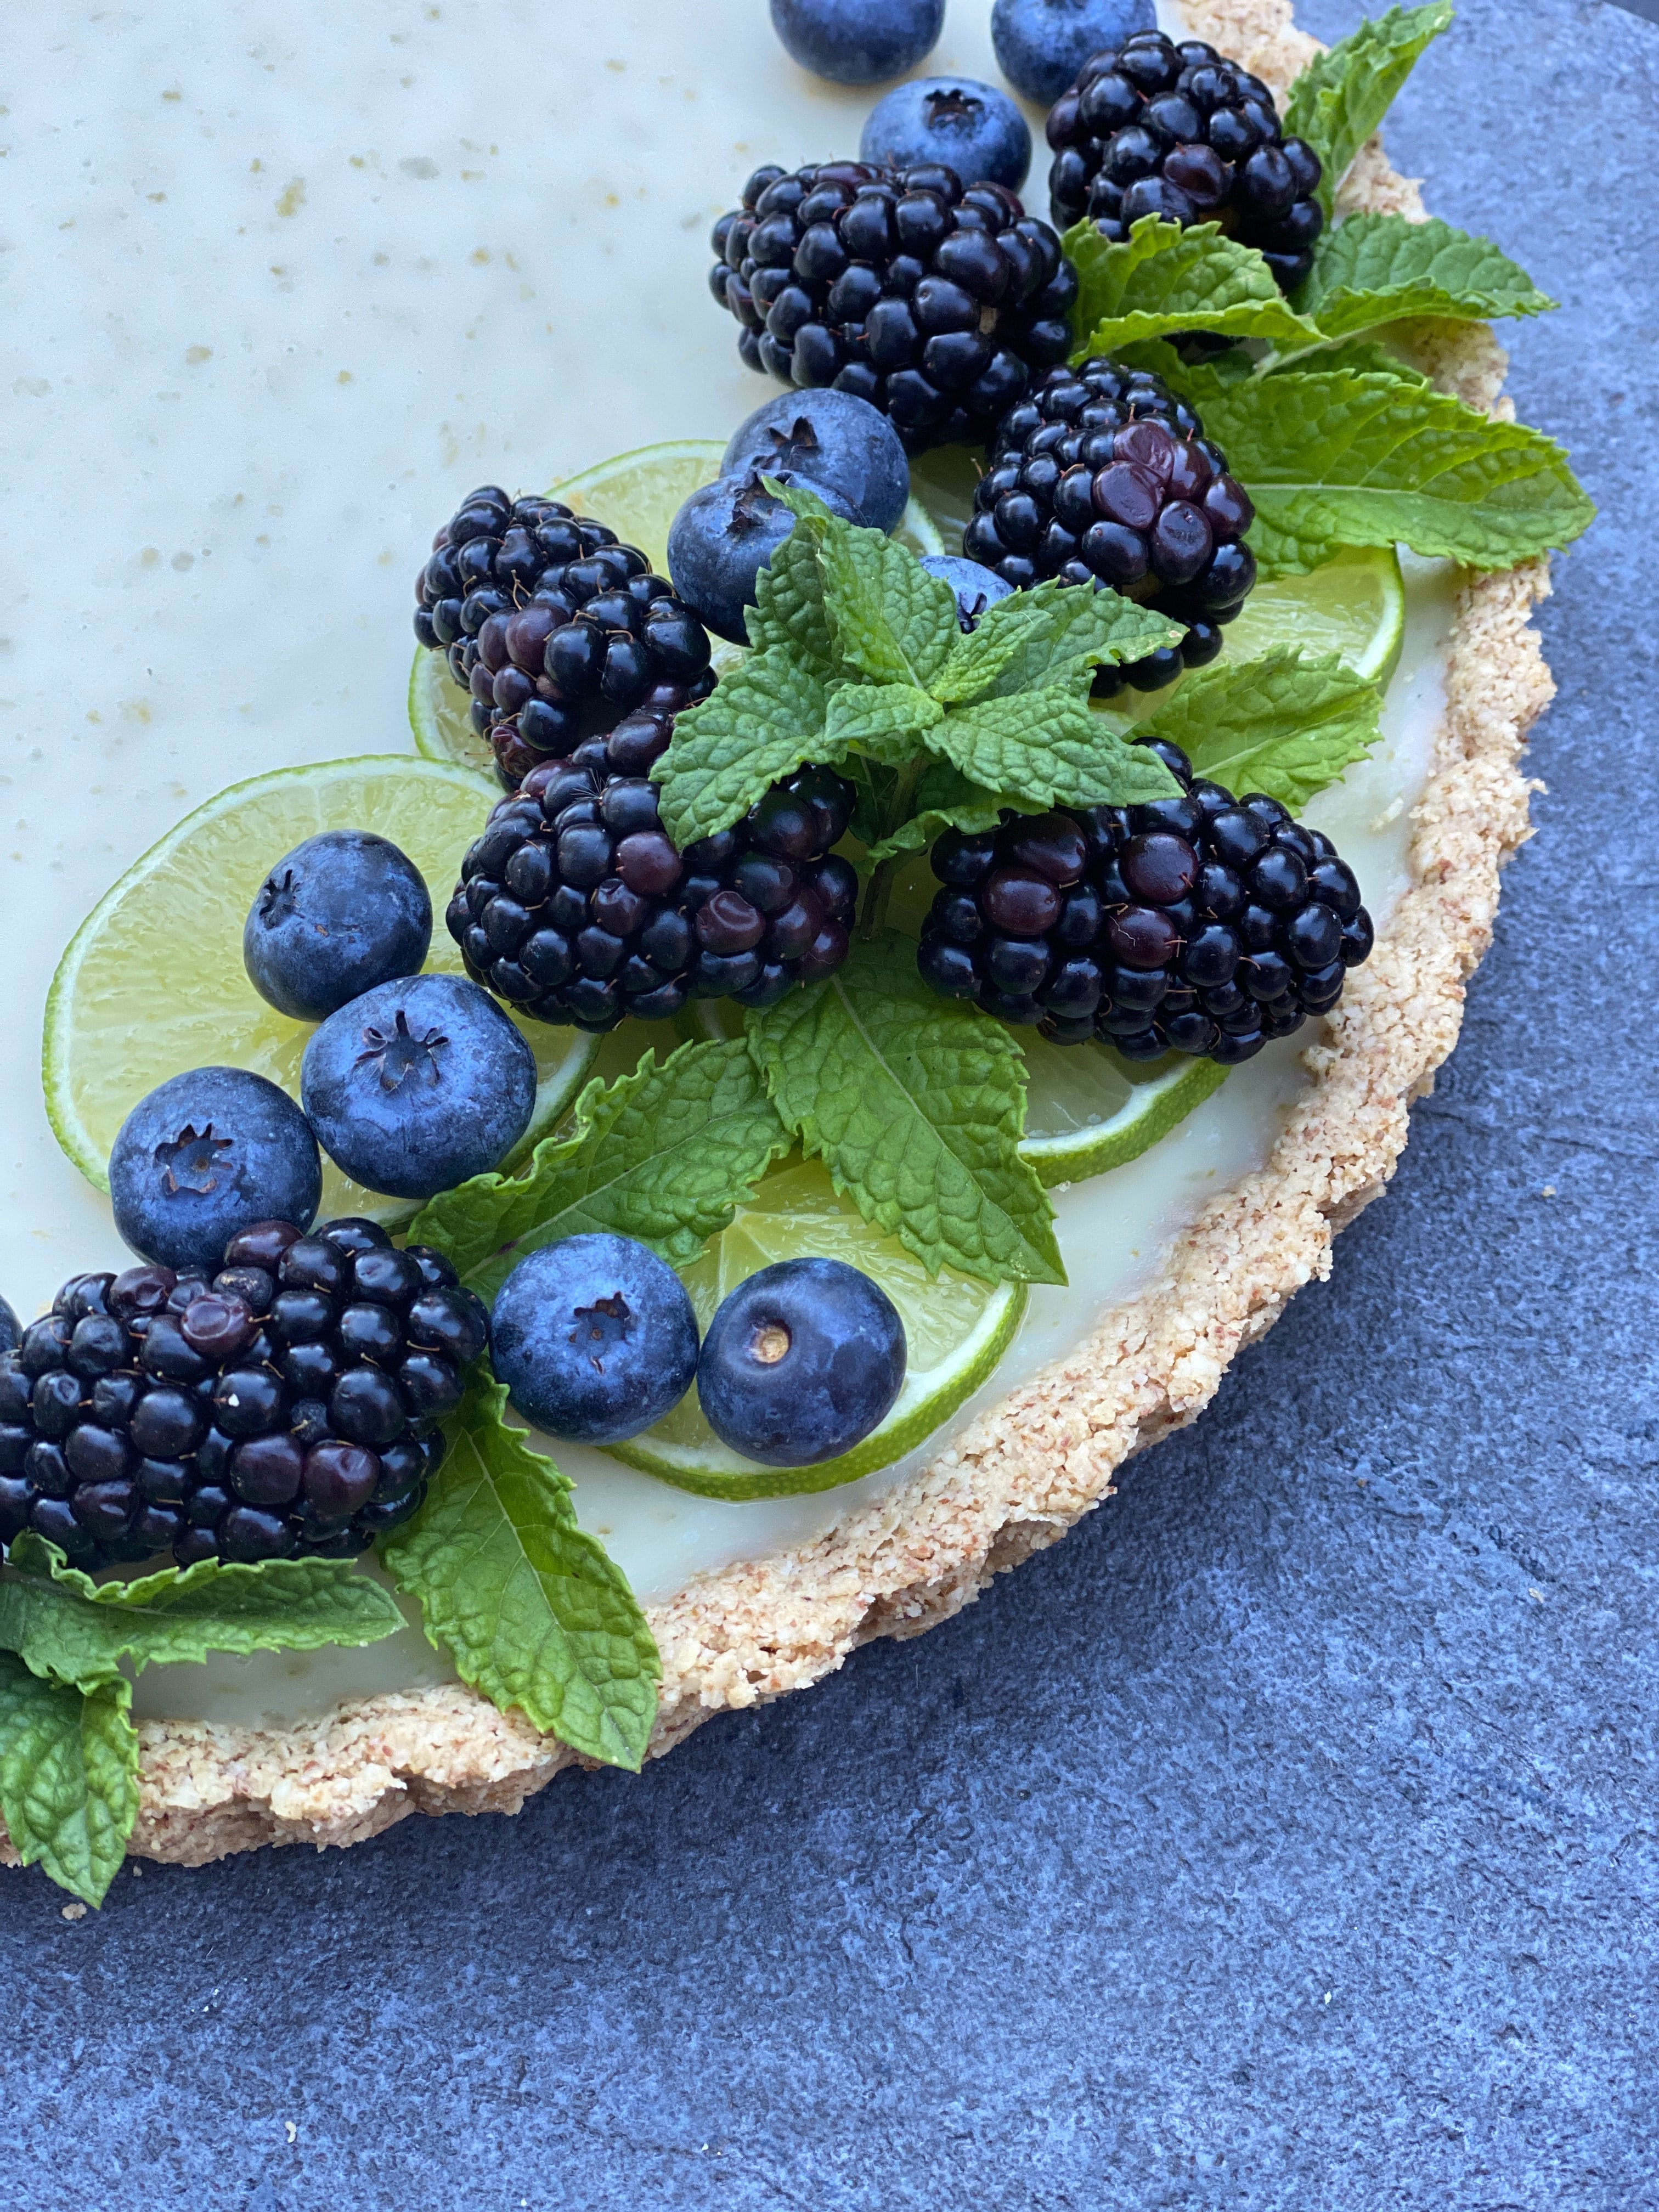 153321 download wallpaper Food, Pie, Mint, Bilberries, Berries, Blackberry screensavers and pictures for free